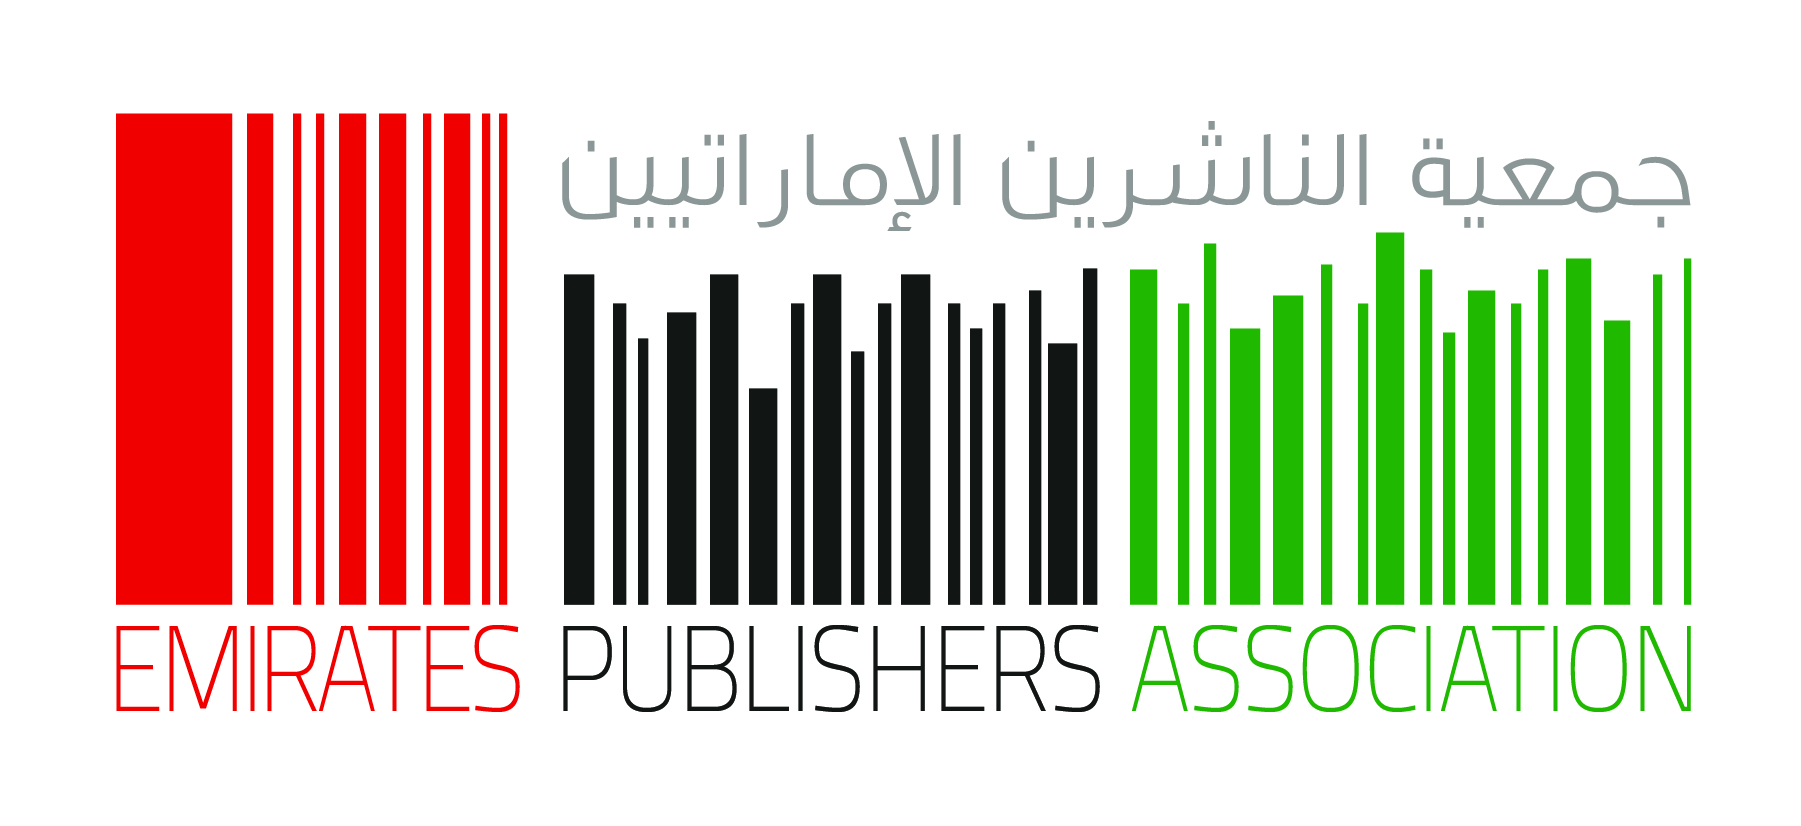 EPA launches new initiatives to help the local  publishing industry mitigate impact of COVID-19